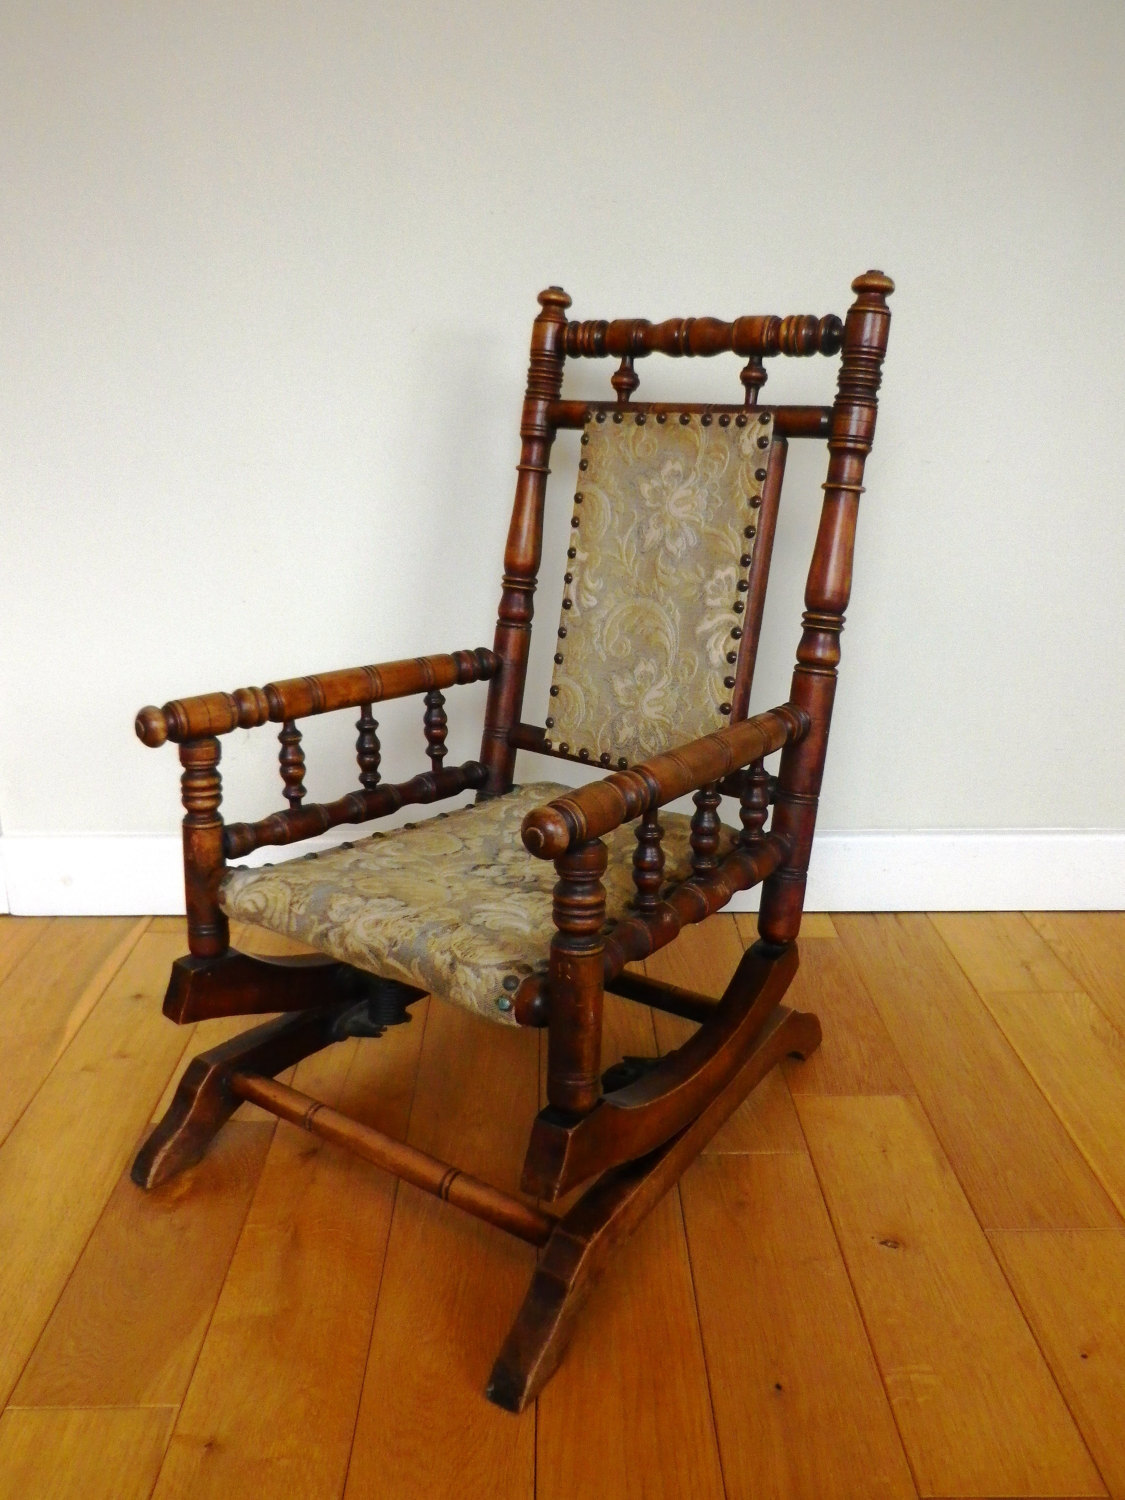 Miraculous Antique Rocking Chair Late 19Th Century Oak And Beech Childs American Rocking Chair Victorian Rocking Chair Beatyapartments Chair Design Images Beatyapartmentscom